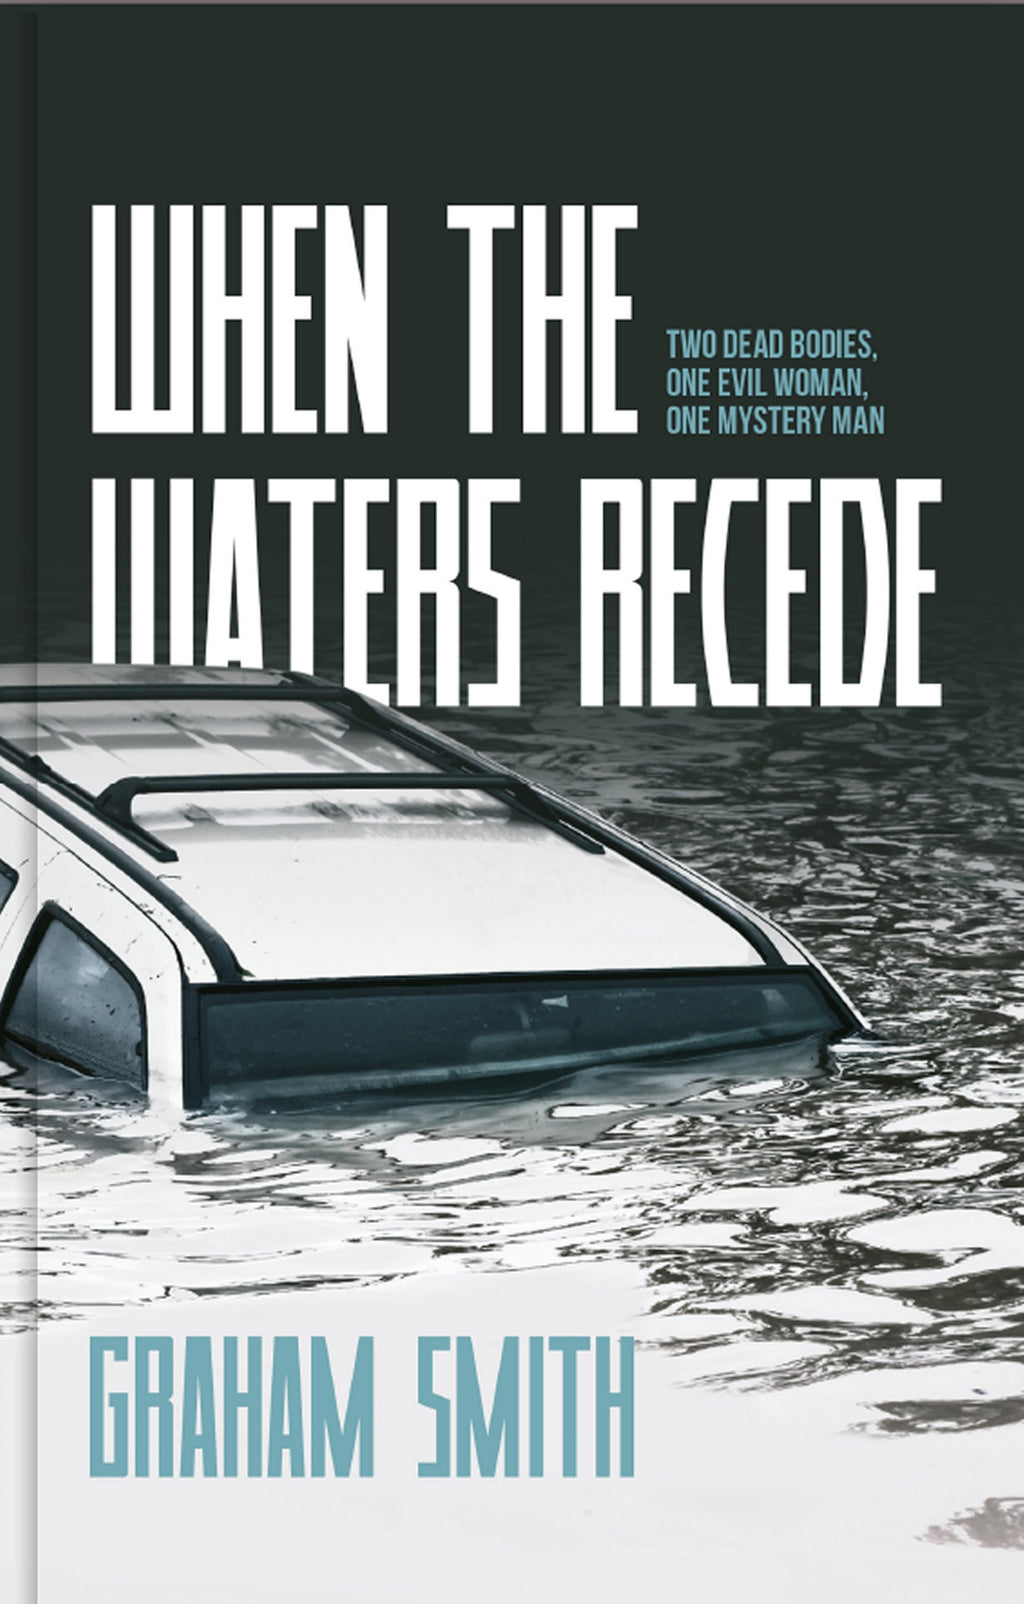 When The Waters Recede - DI Harry Evans - Caffeine Nights Books